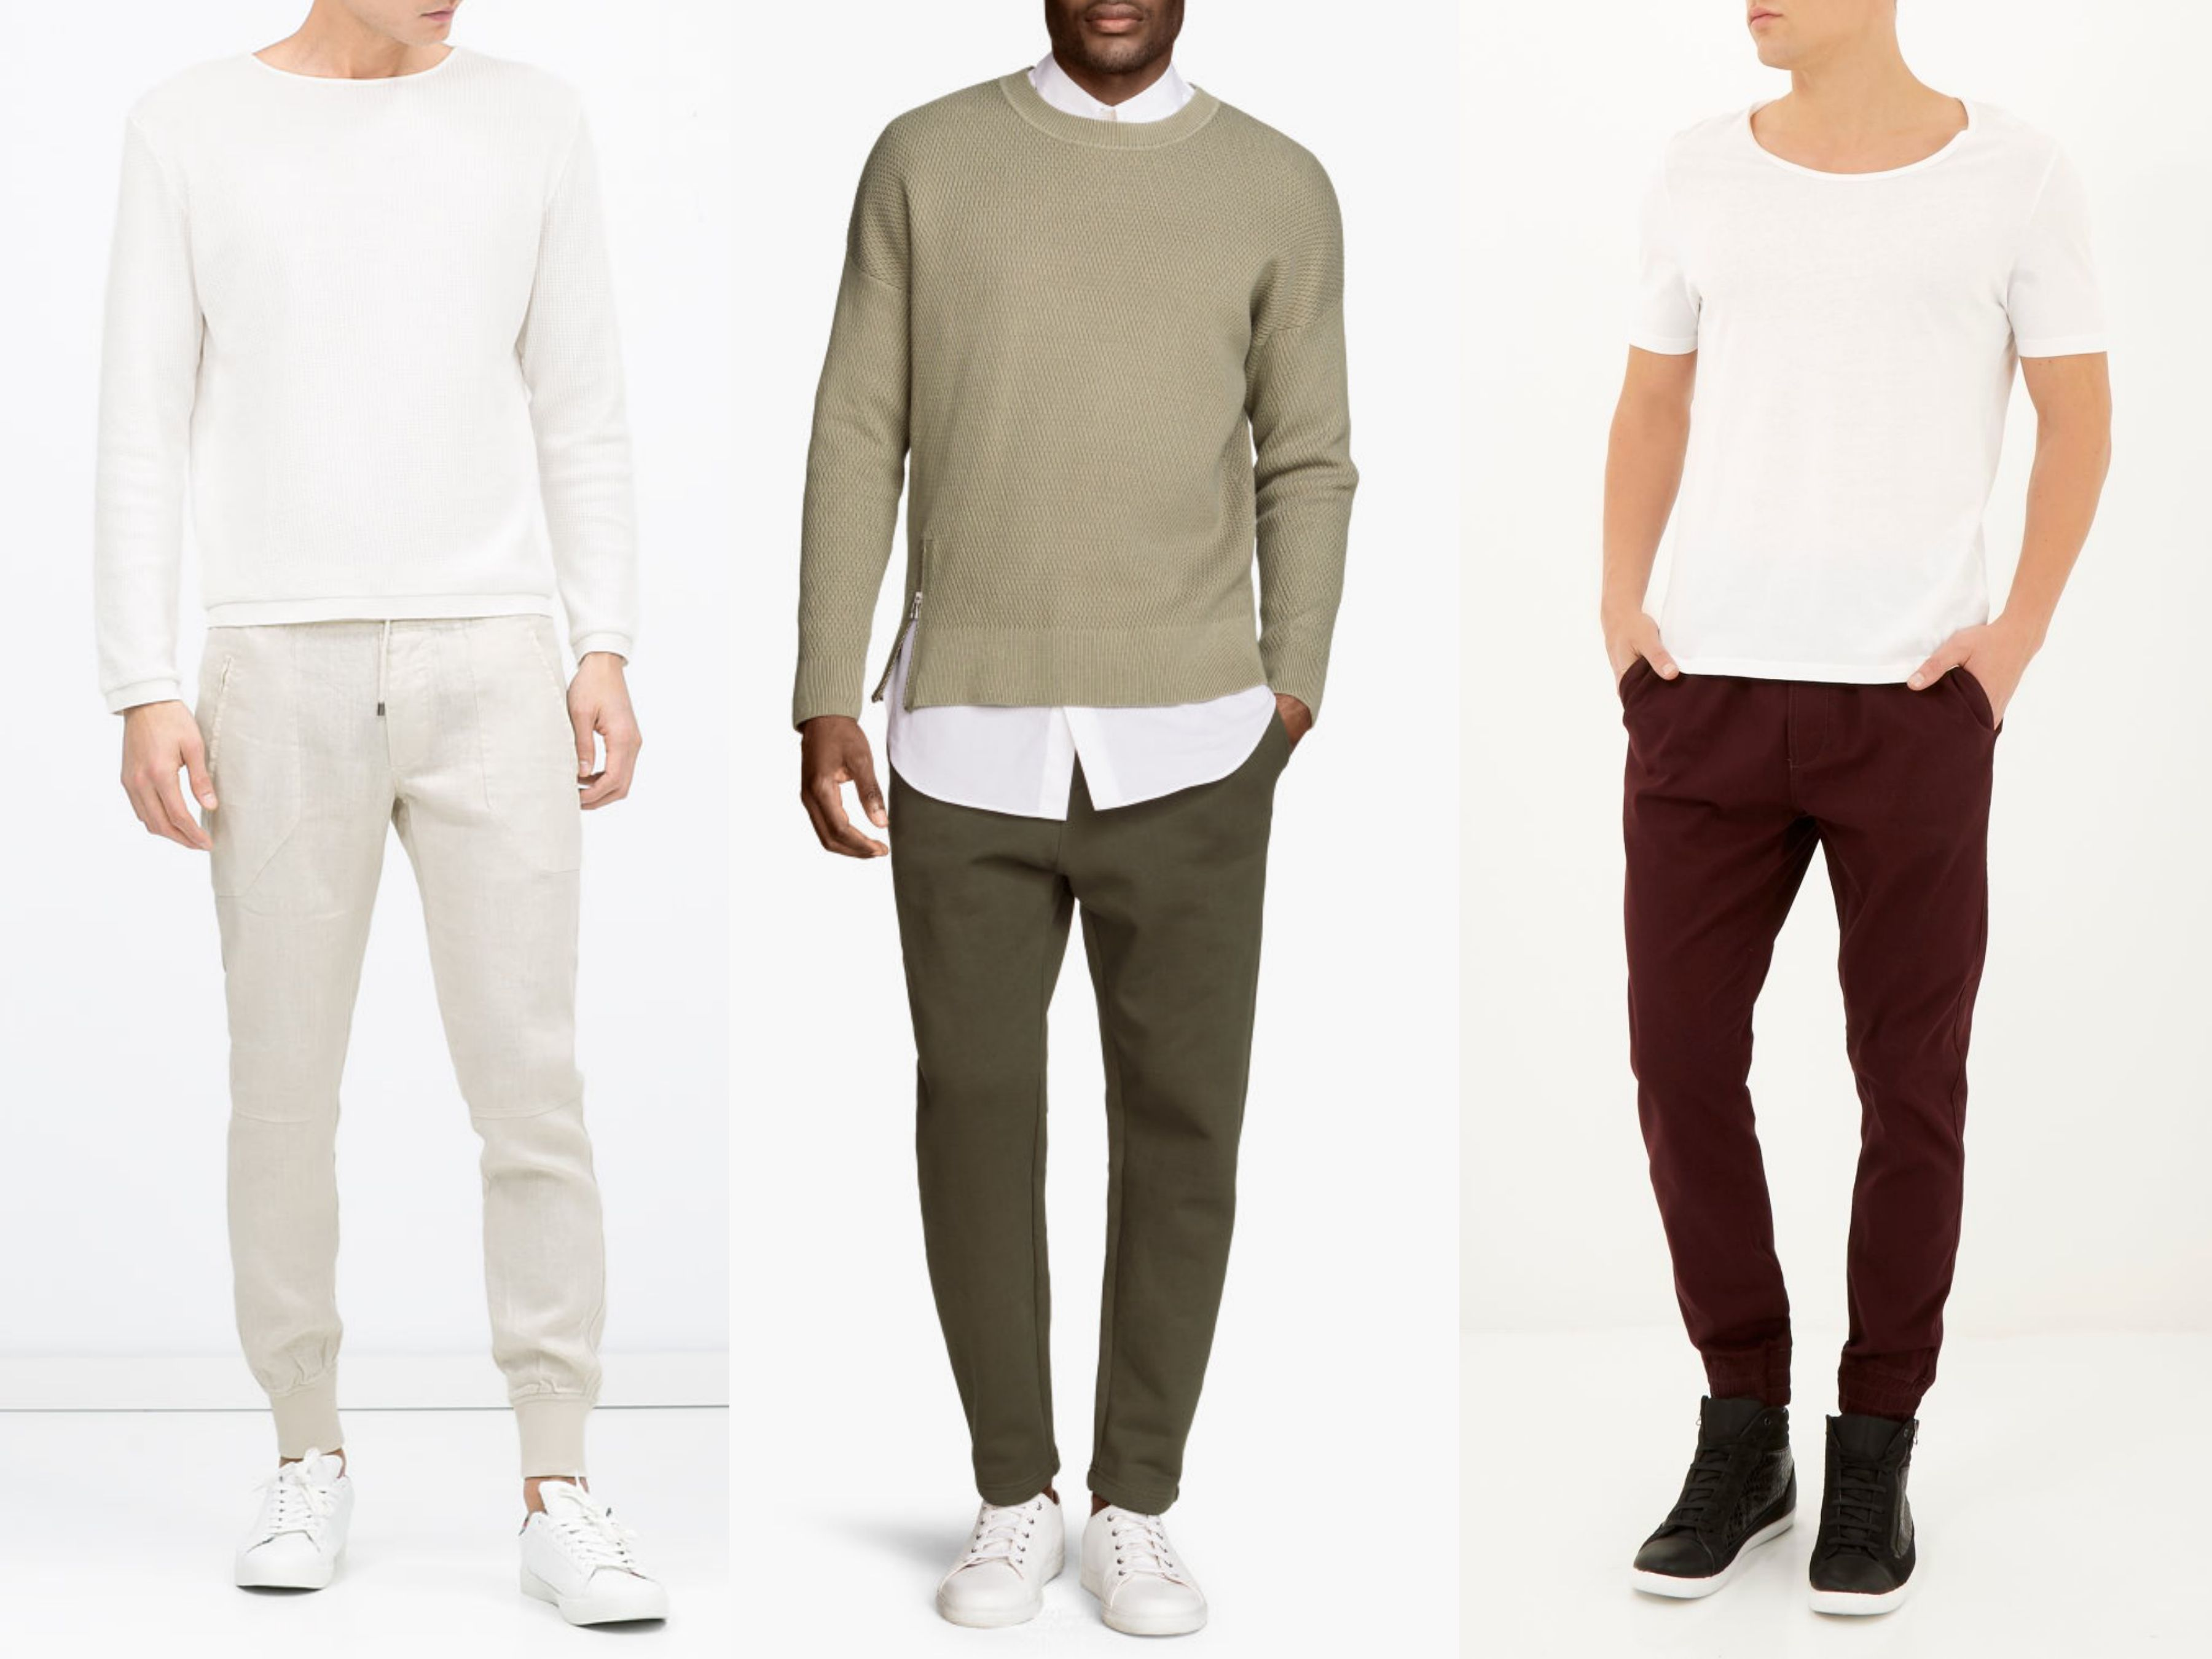 77252b7b 10 Tailored Jogging Pants Under $100